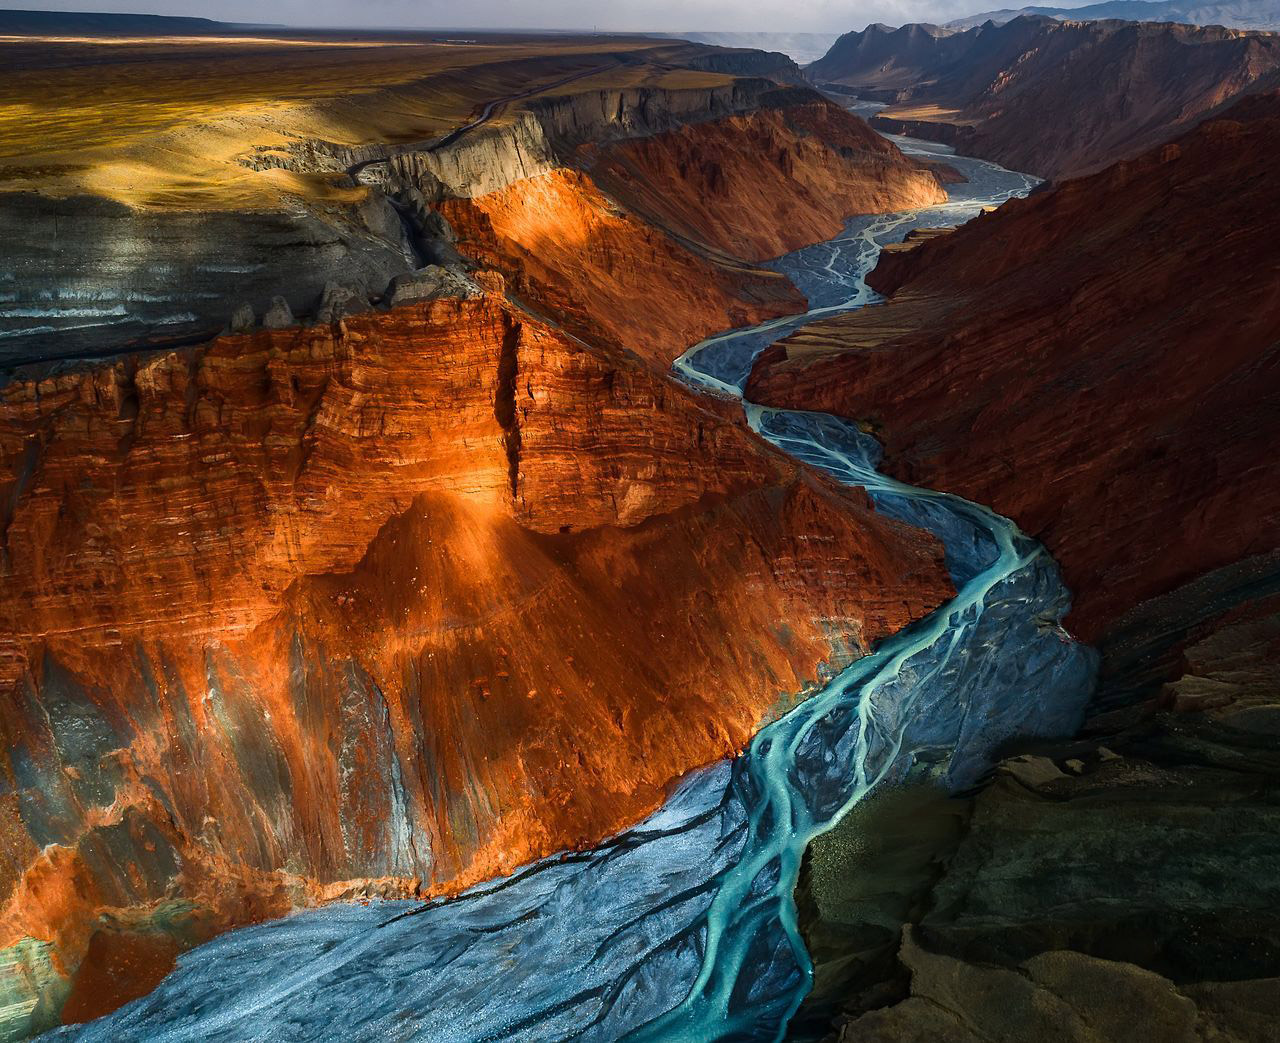 Dushanzi Grand Canyon, © Yuhan Liao, 2nd Place, Landscapes, National Geographic Nature Photographer of the Year Contest